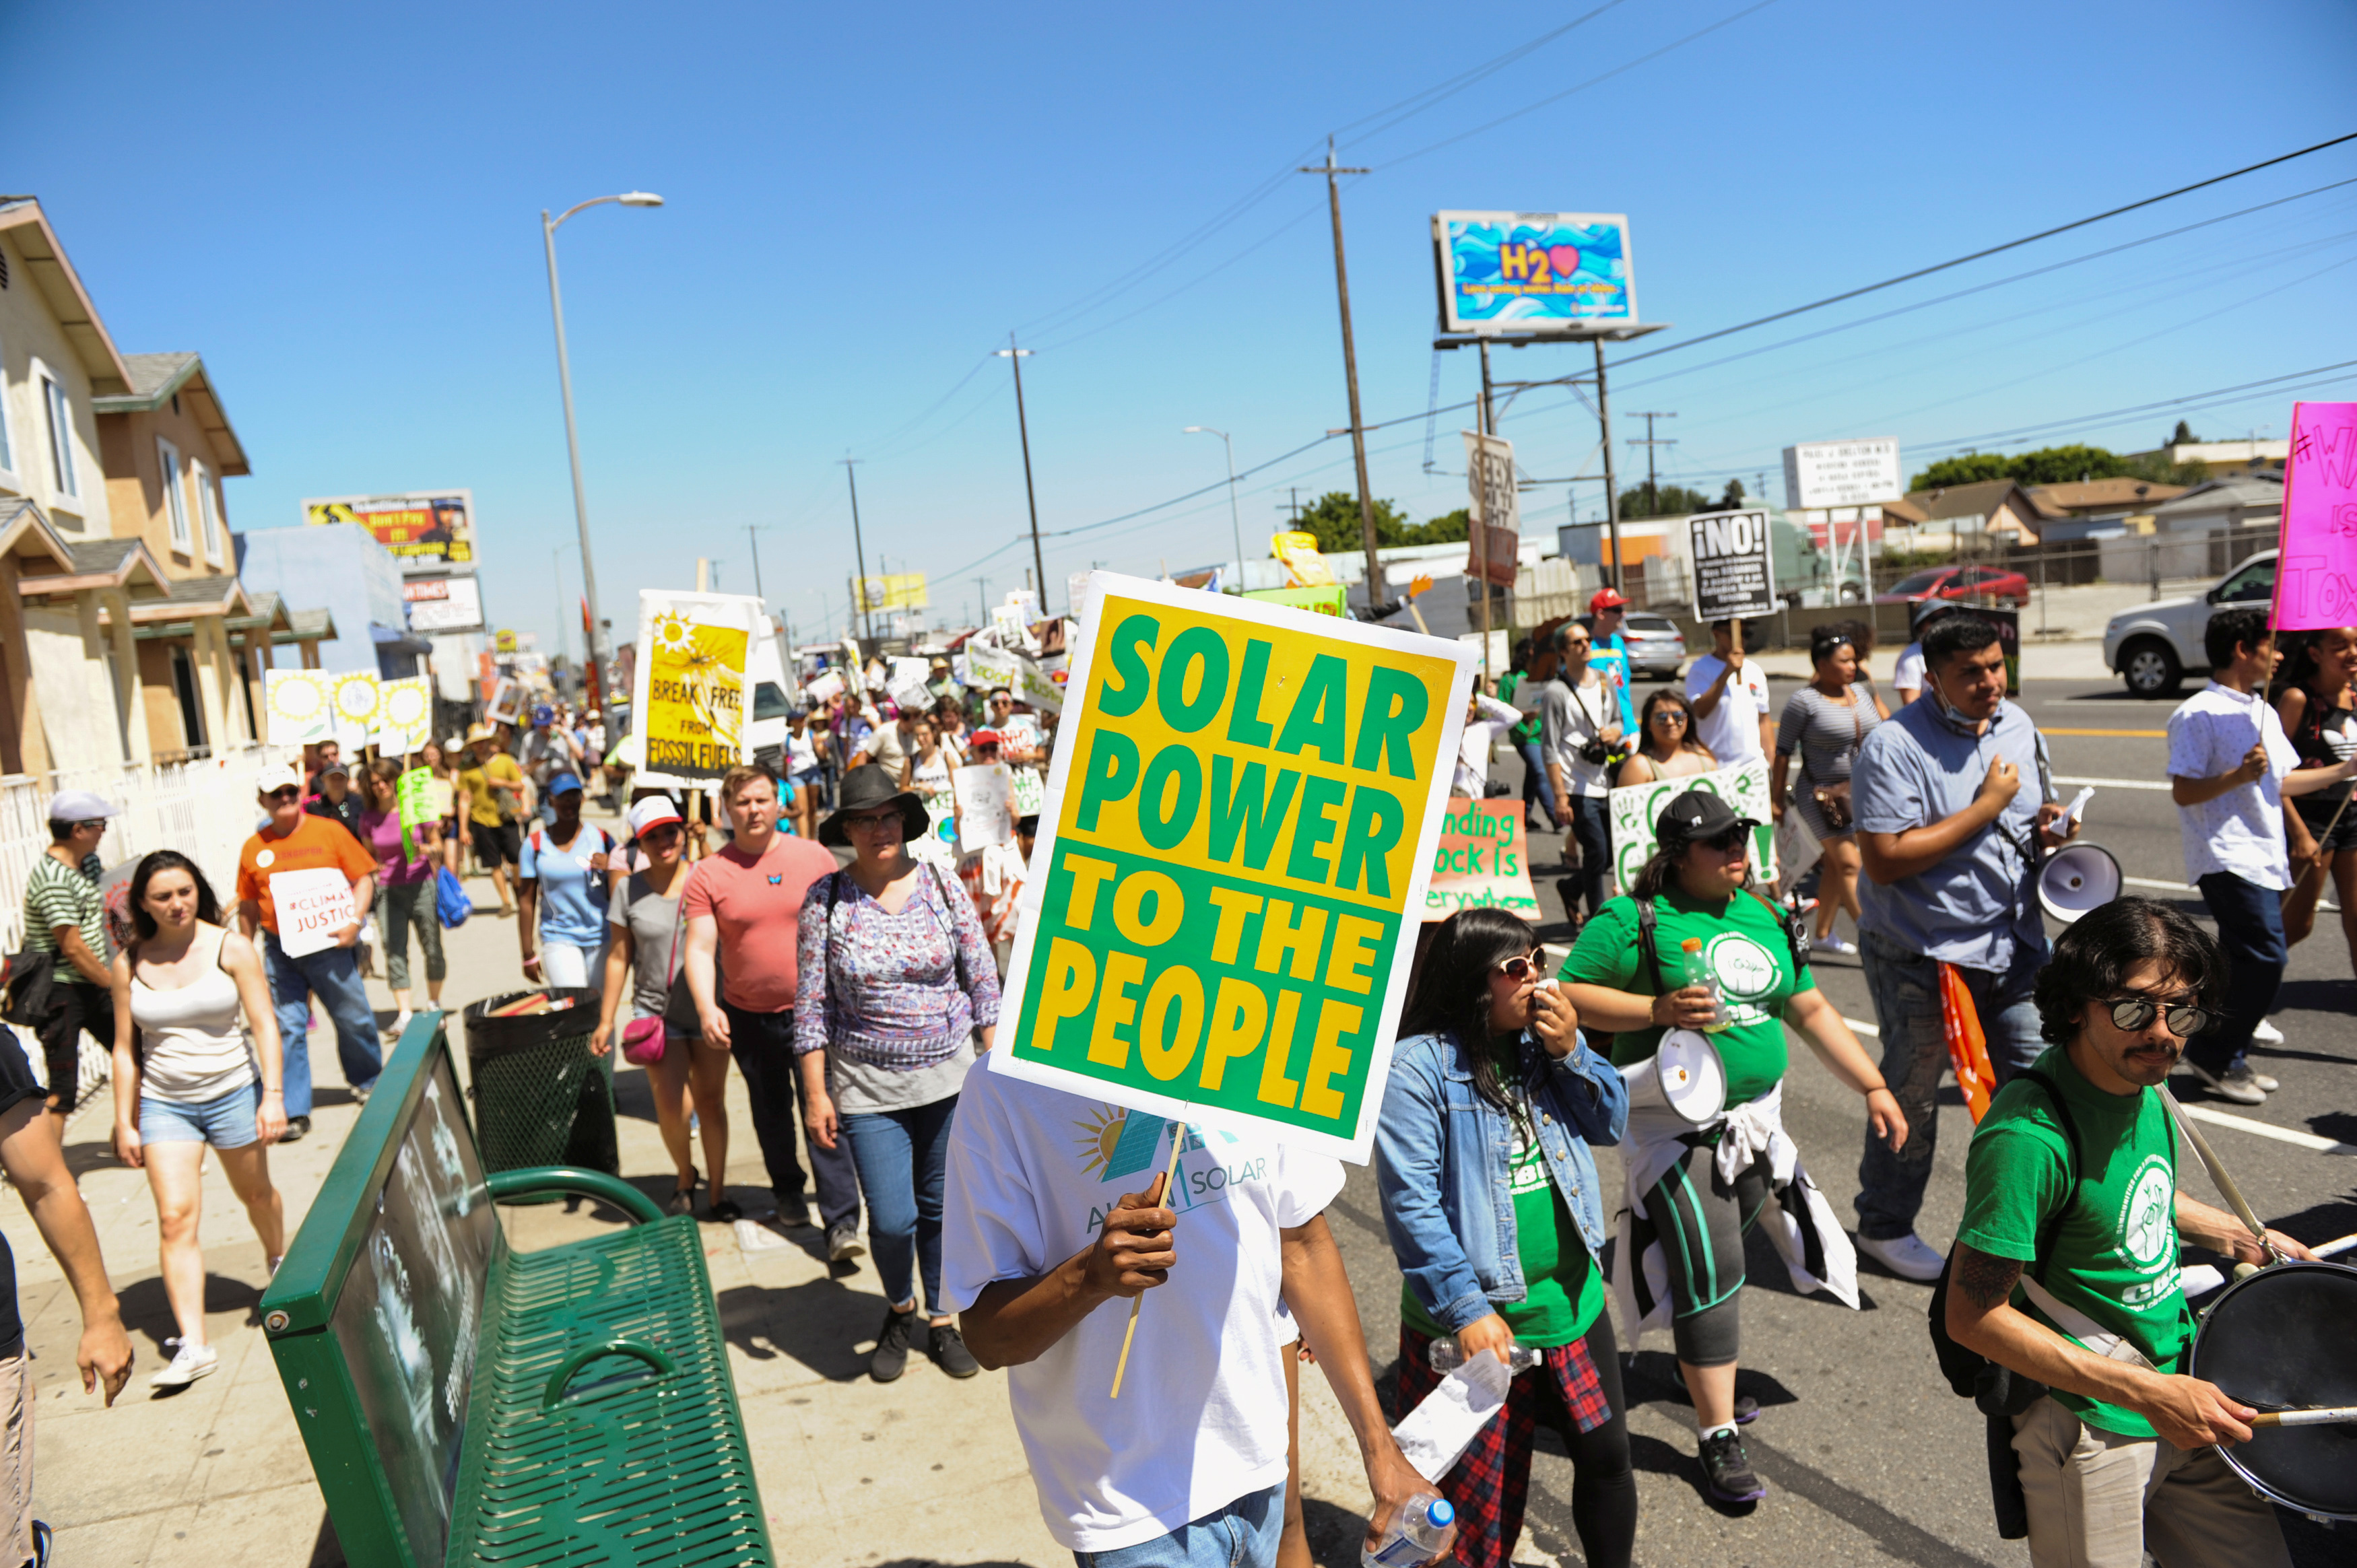 Demonstrators walk on the Pacific Coast highway during People's Climate March protest for the environment in the Wilmington neighborhood in Los Angeles, California, U.S. April 29, 2017. The march, which specifically protested the expansion of a Tesoro refinery, was held in a heavily industrialized neighborhood and was led by environmental leaders from the indigenous and minority communities. REUTERS/Andrew Cullen